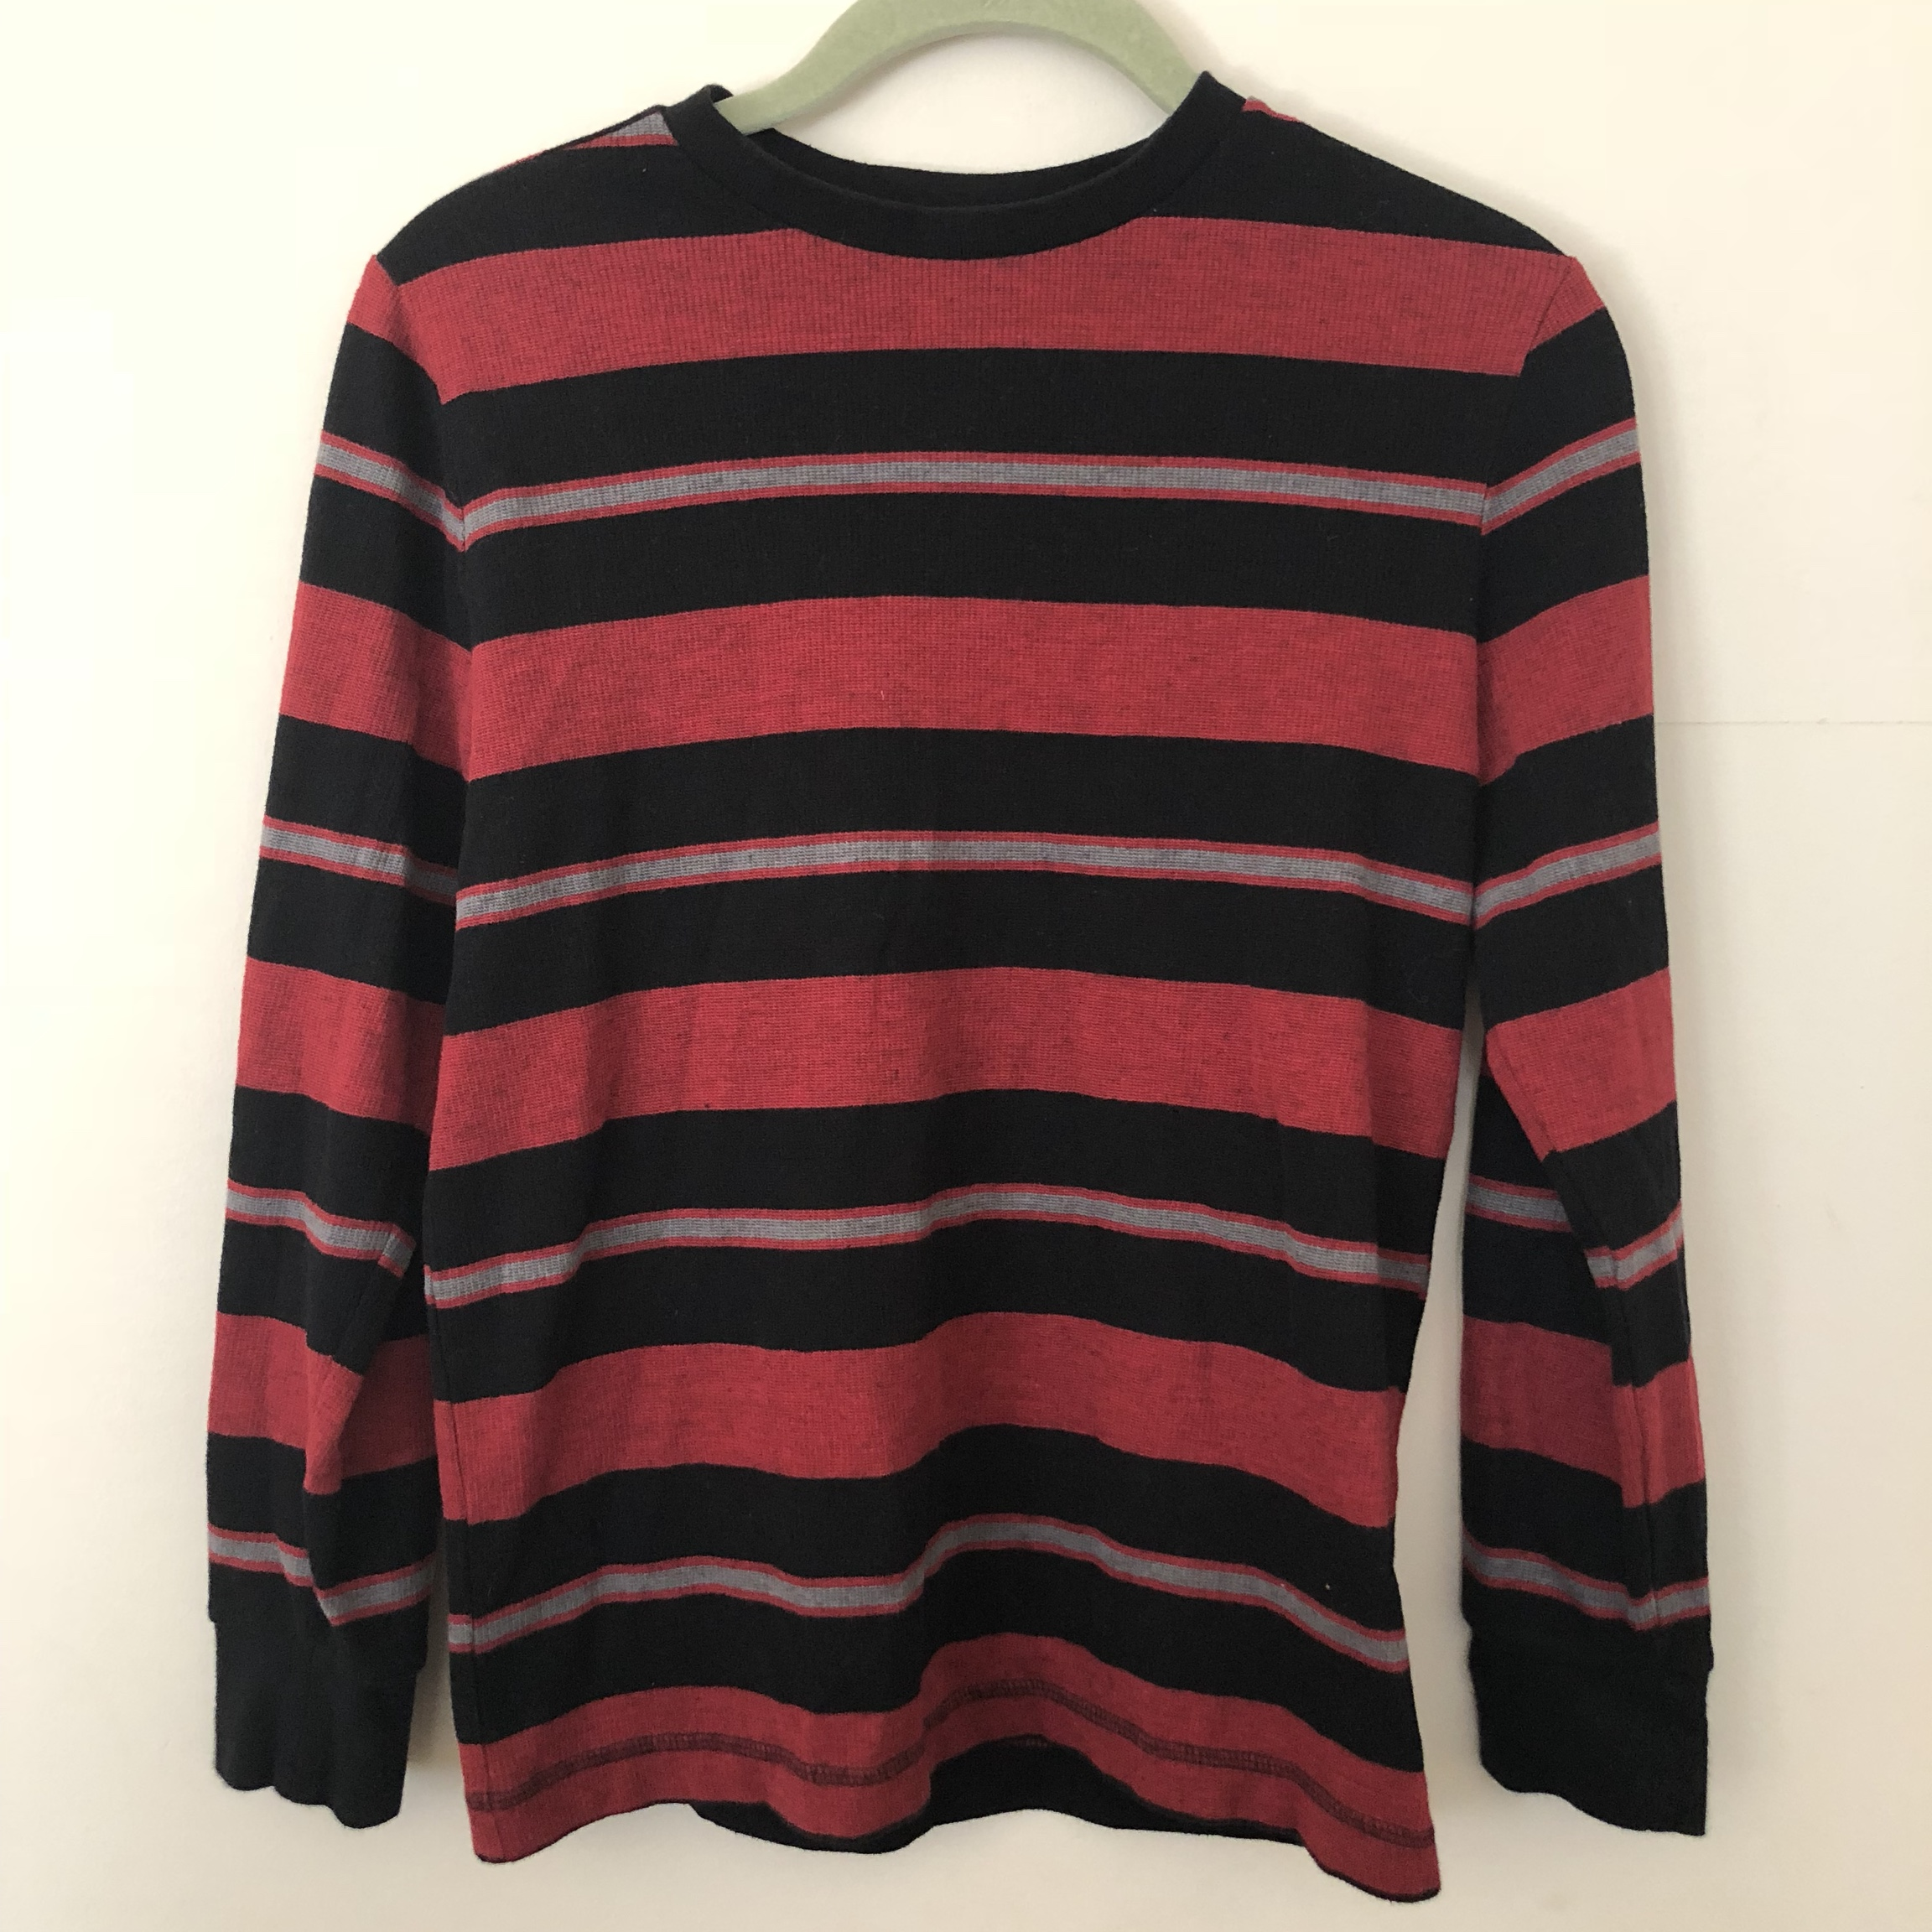 6691862f4f  sabrinasrad. last year. United States. Black and red striped top. Cool  edgy 90s grunge ...